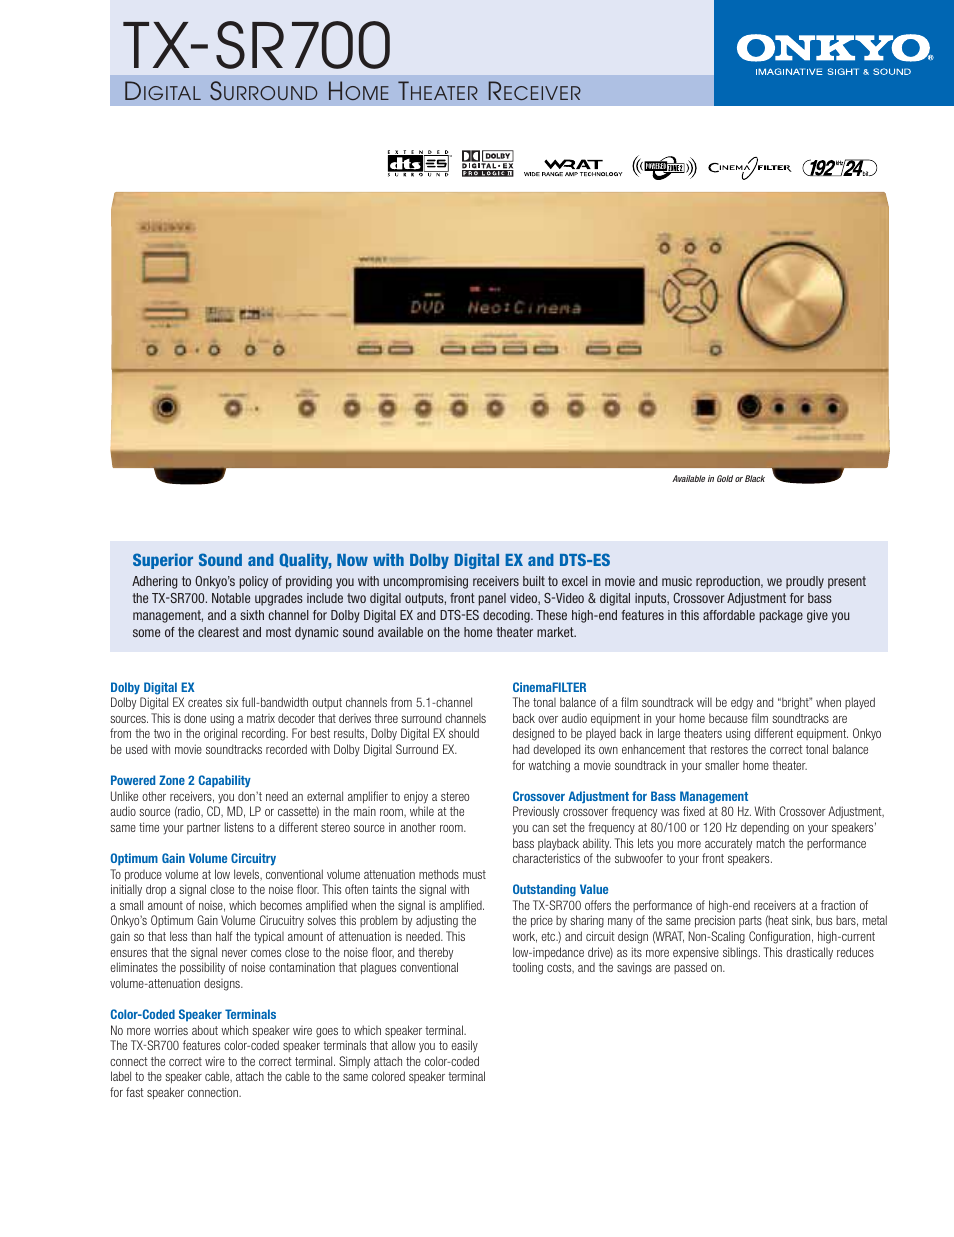 Onkyo Tx Sr700 User Manual 2 Pages Wiring For Speakers In Home Theaters